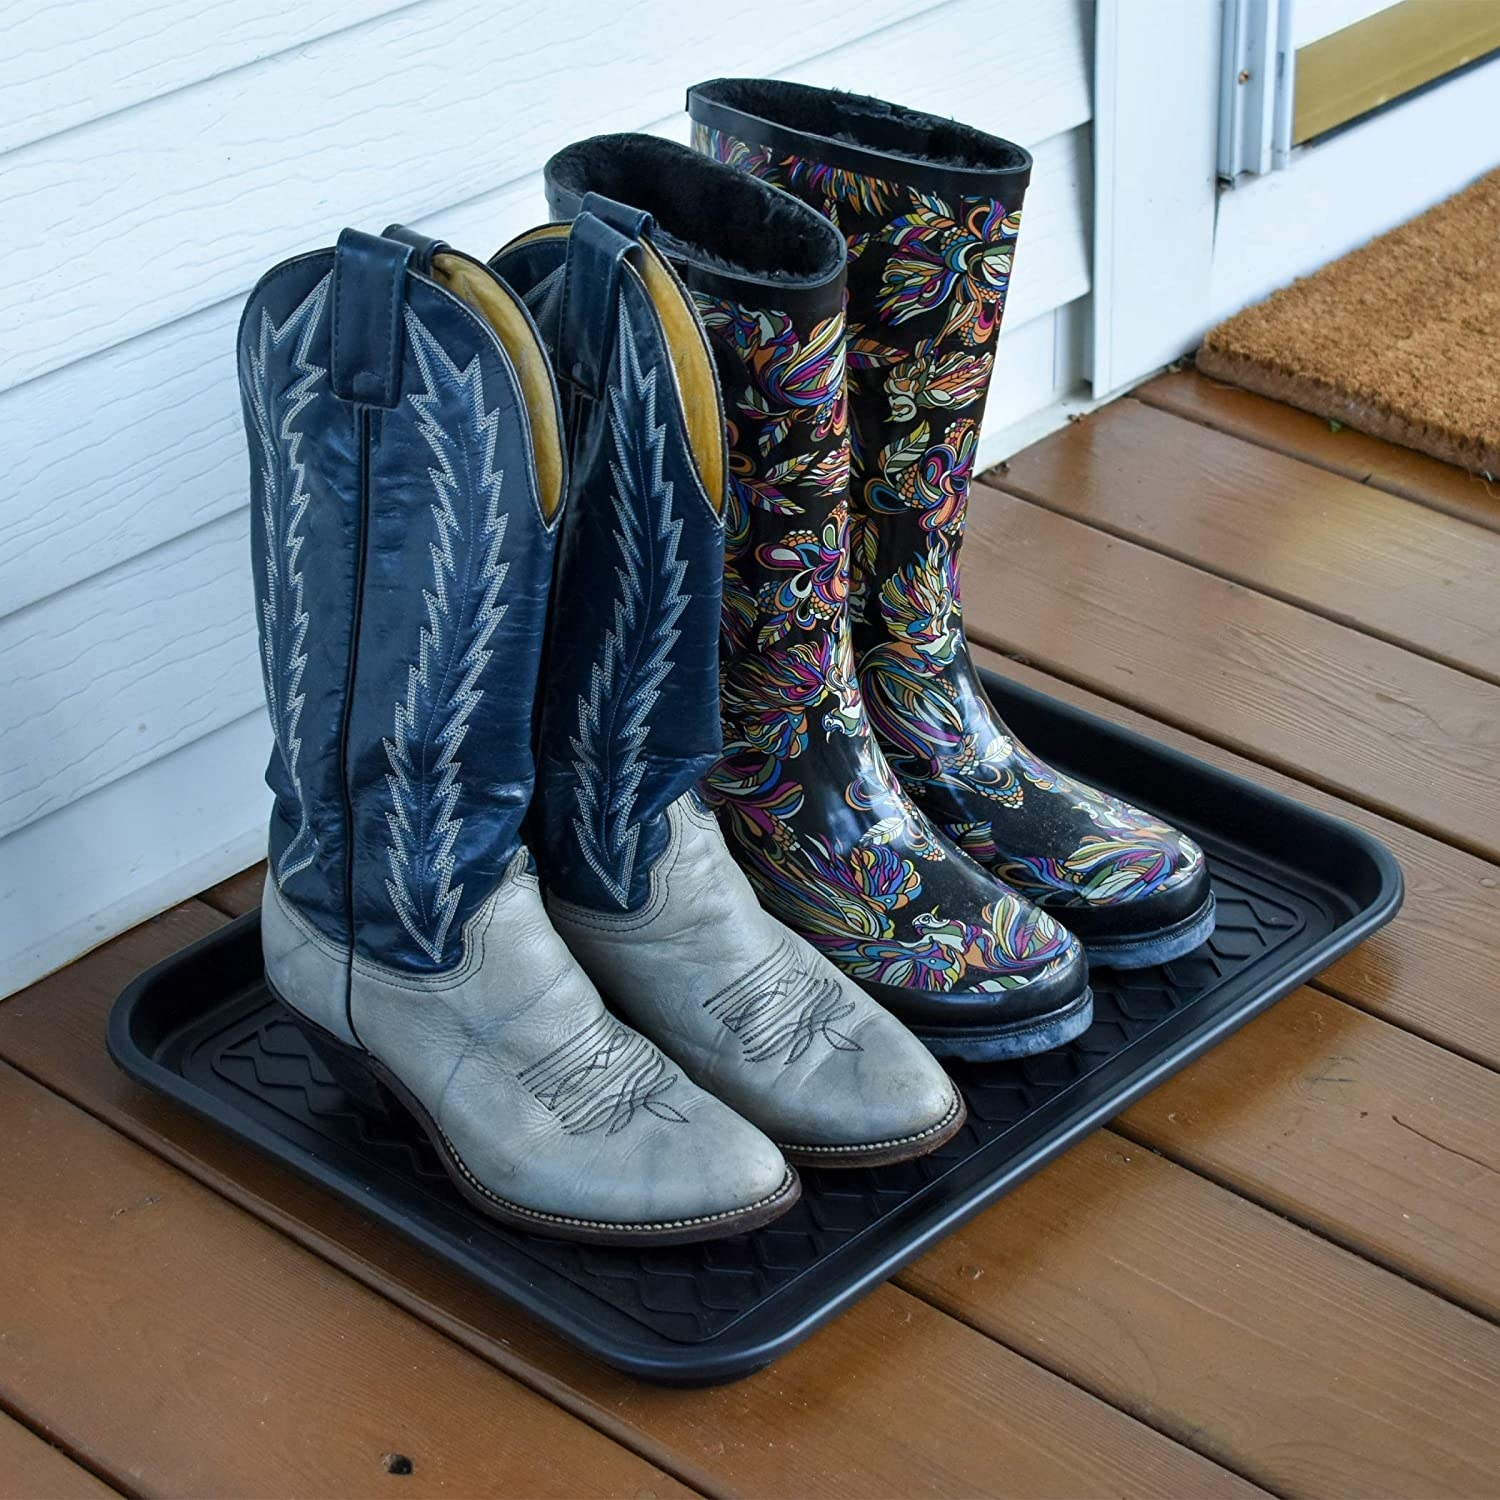 Two pairs of boots on a rubber tray on the porch